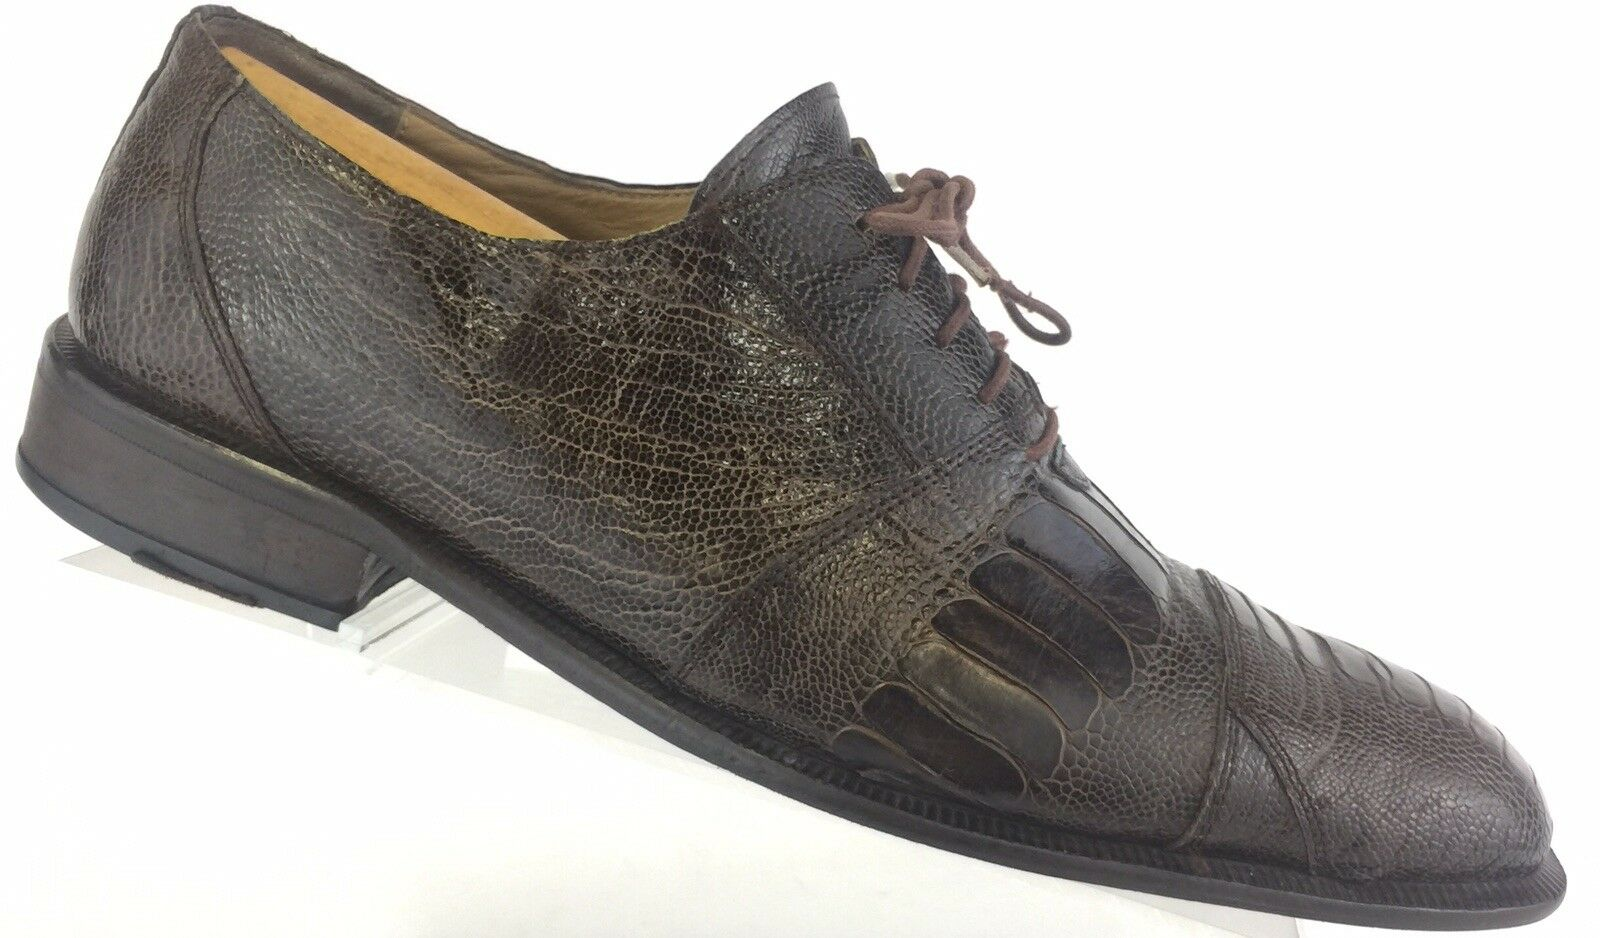 David Eden Exotic Ostrich Leg Oxfords Cap Toe Brown shoes Mens 9.5